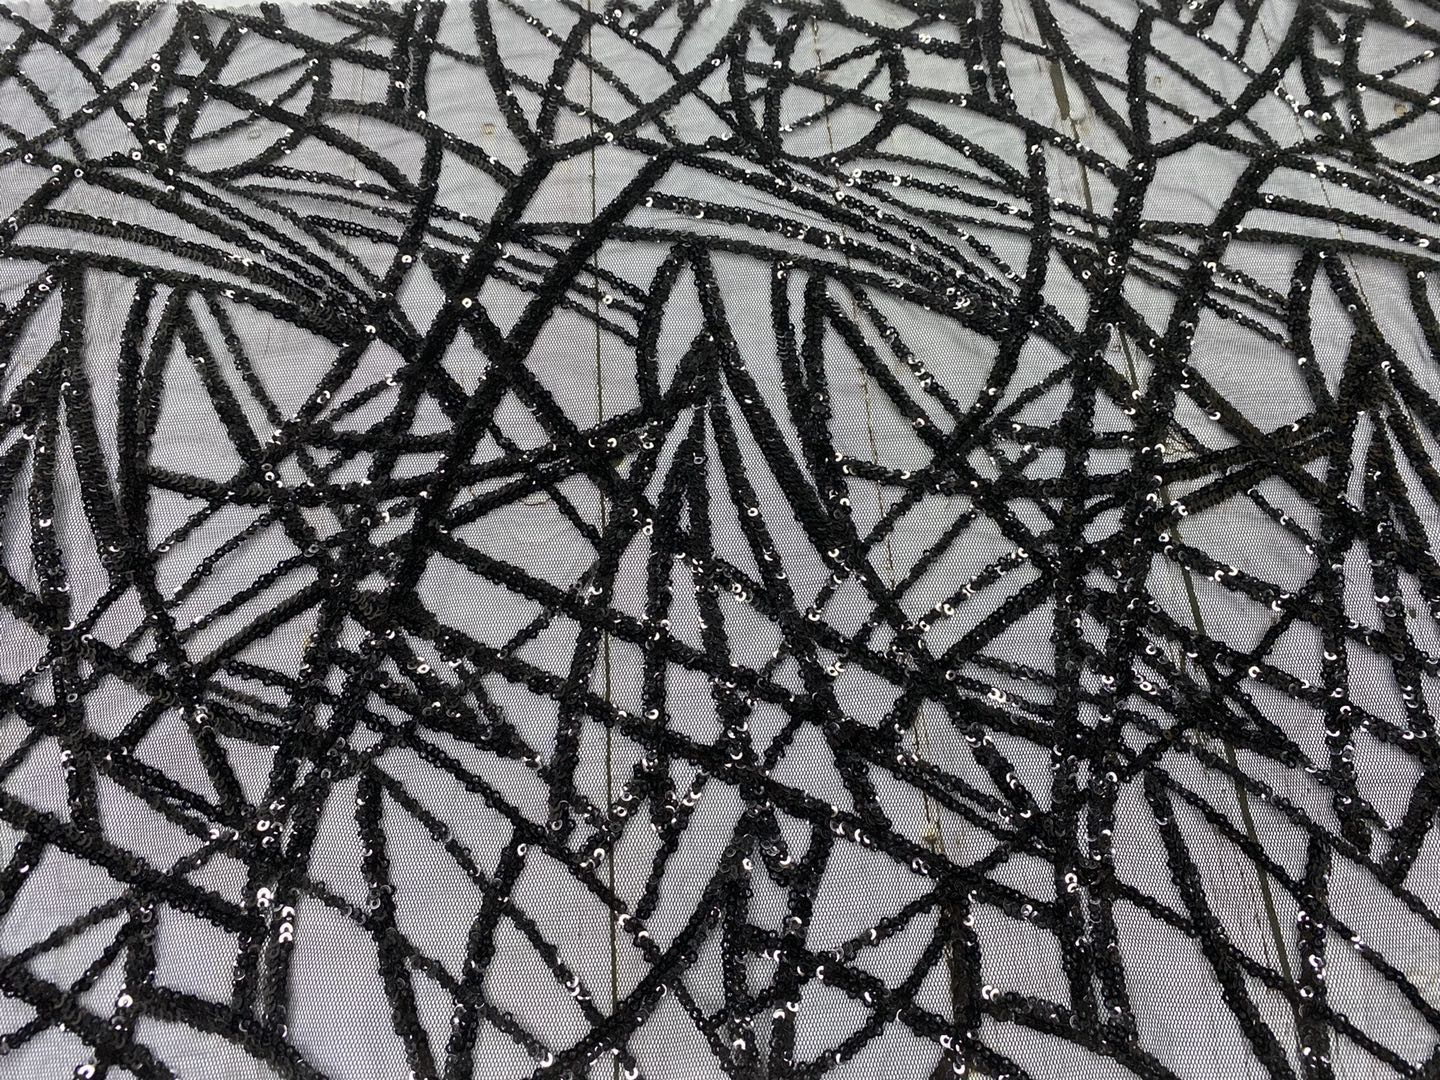 Black 3mm Sequins Embroidery Fabric